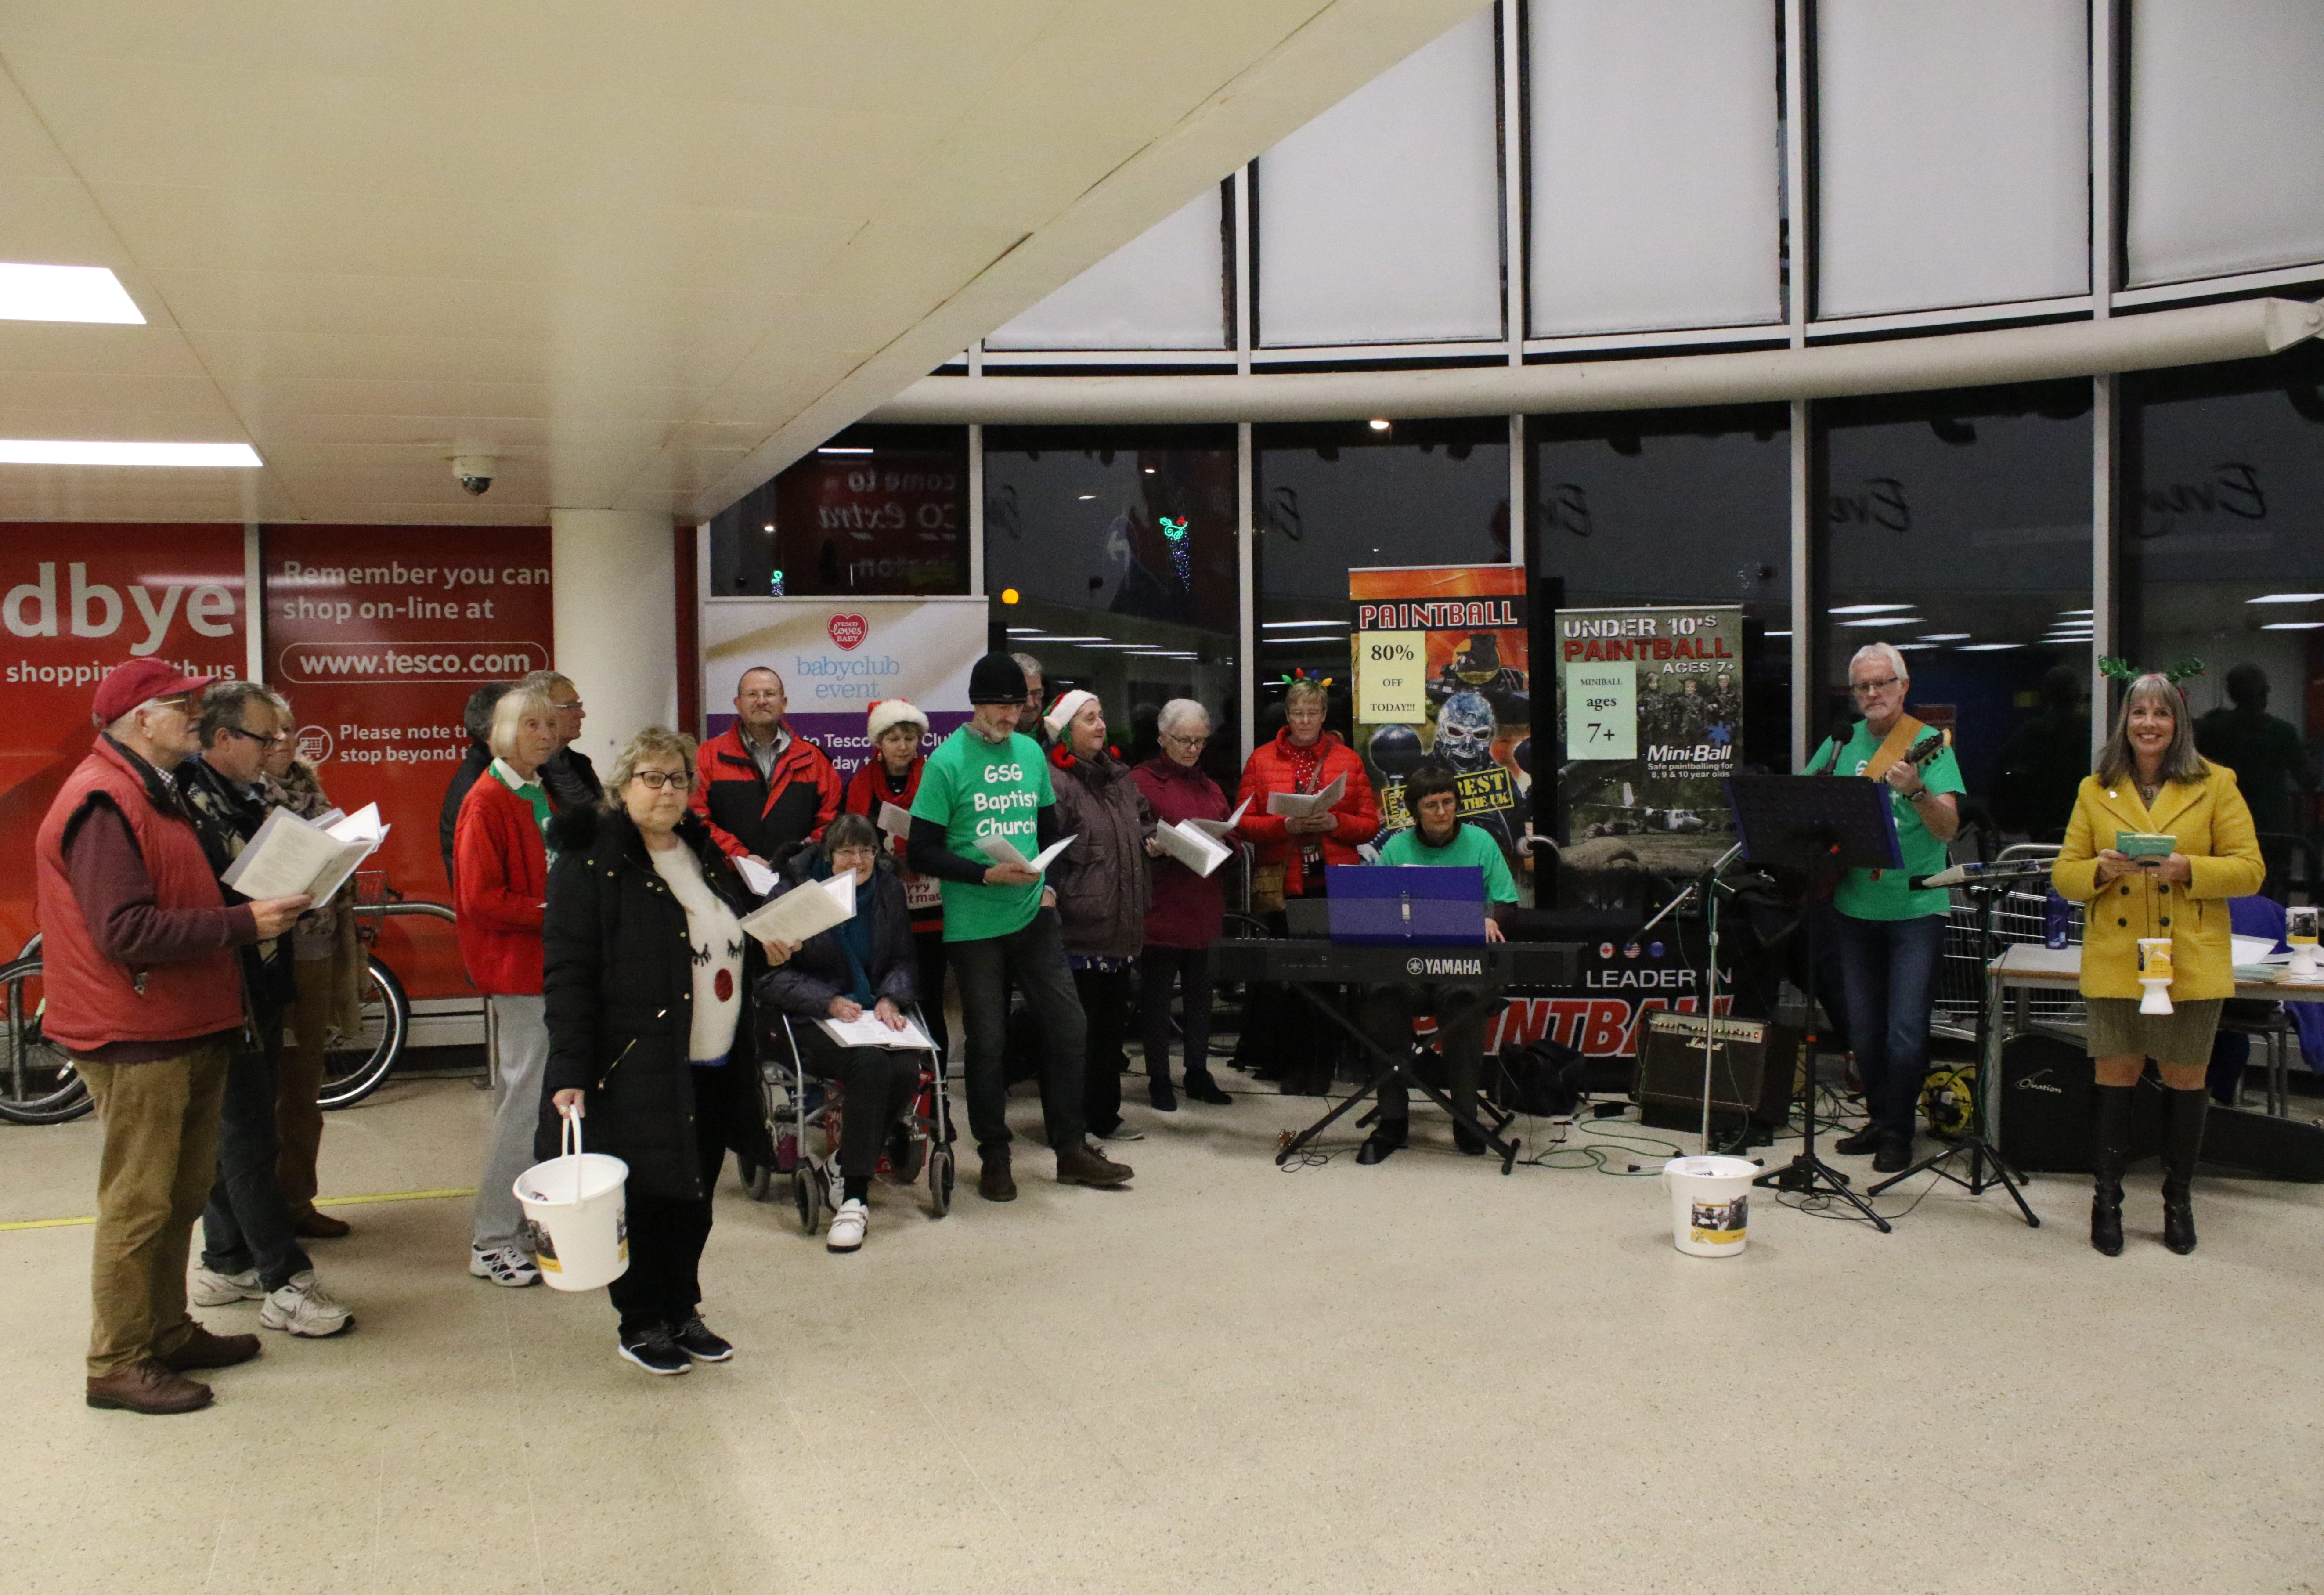 Carol Singing in Tesco's